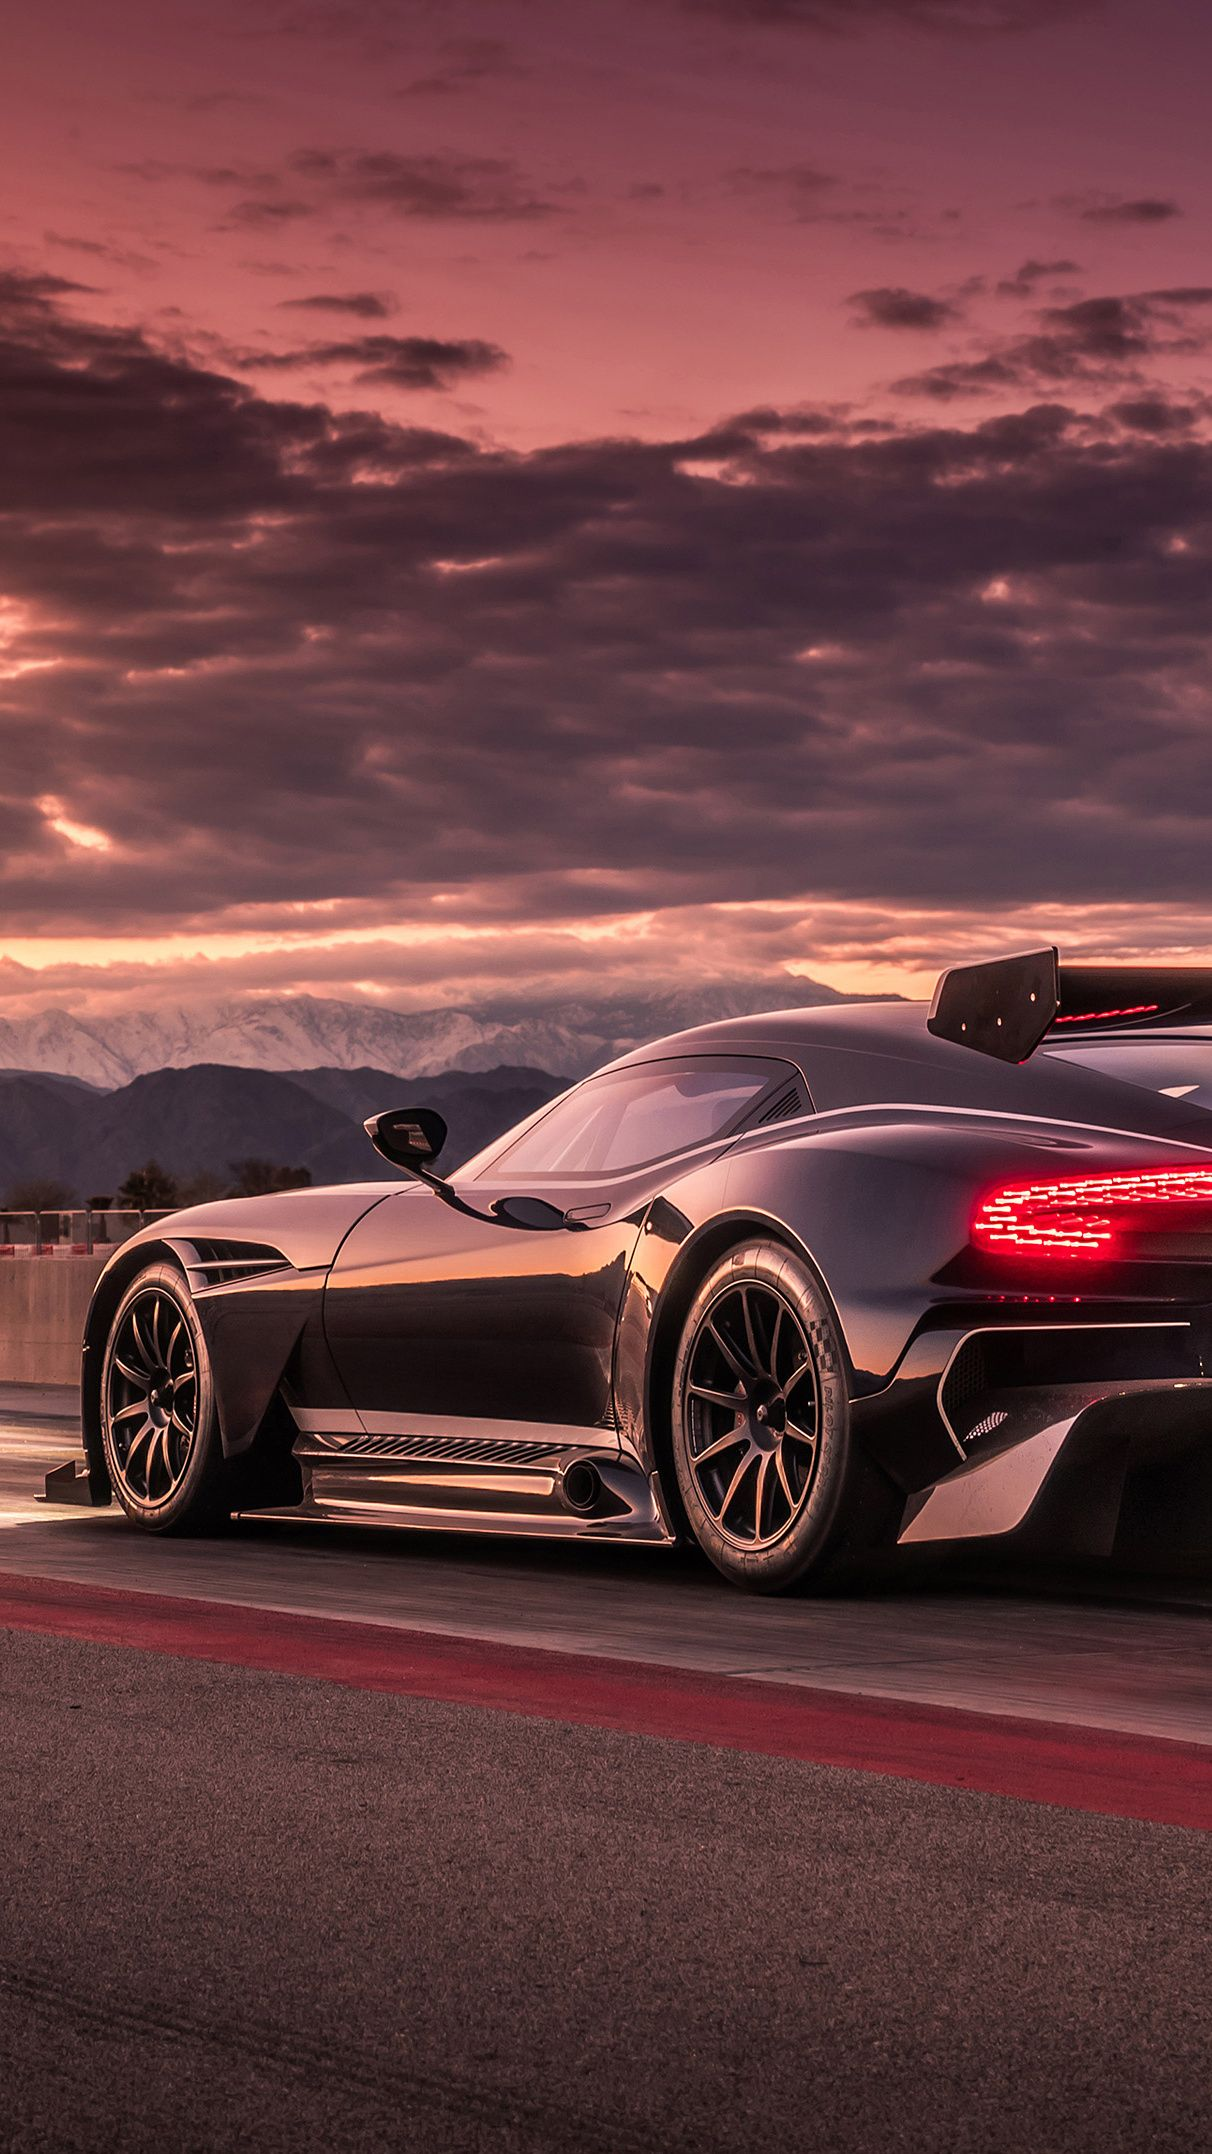 Pin By Faruk Icyar On Android Iphone Daily Wallpapers Aston Martin Vulcan Aston Martin Sports Cars Luxury